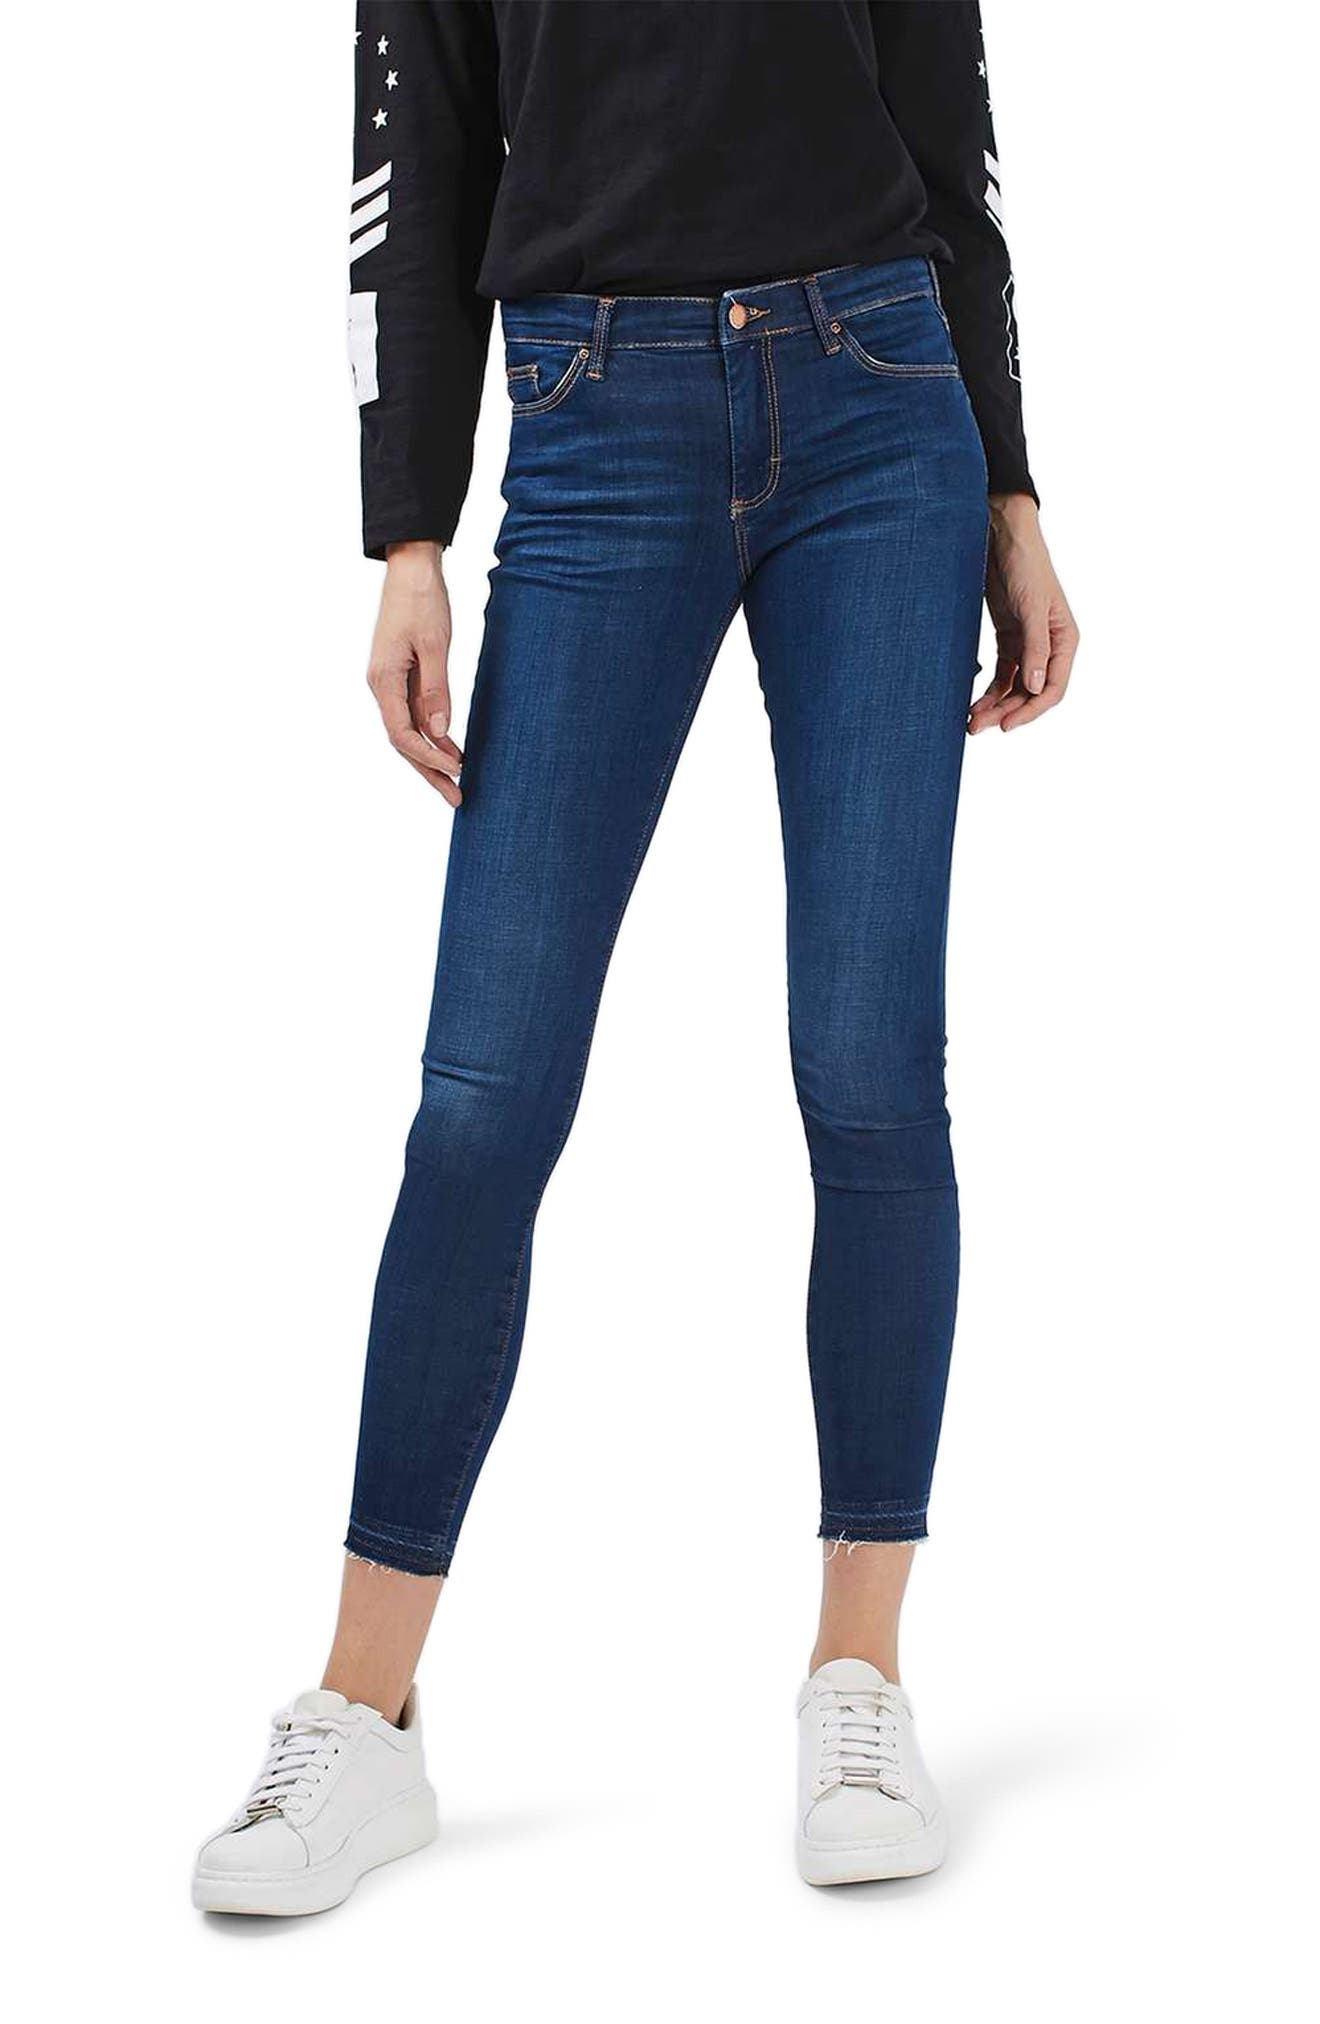 Leigh Released Hem Skinny Jeans,                             Main thumbnail 1, color,                             401